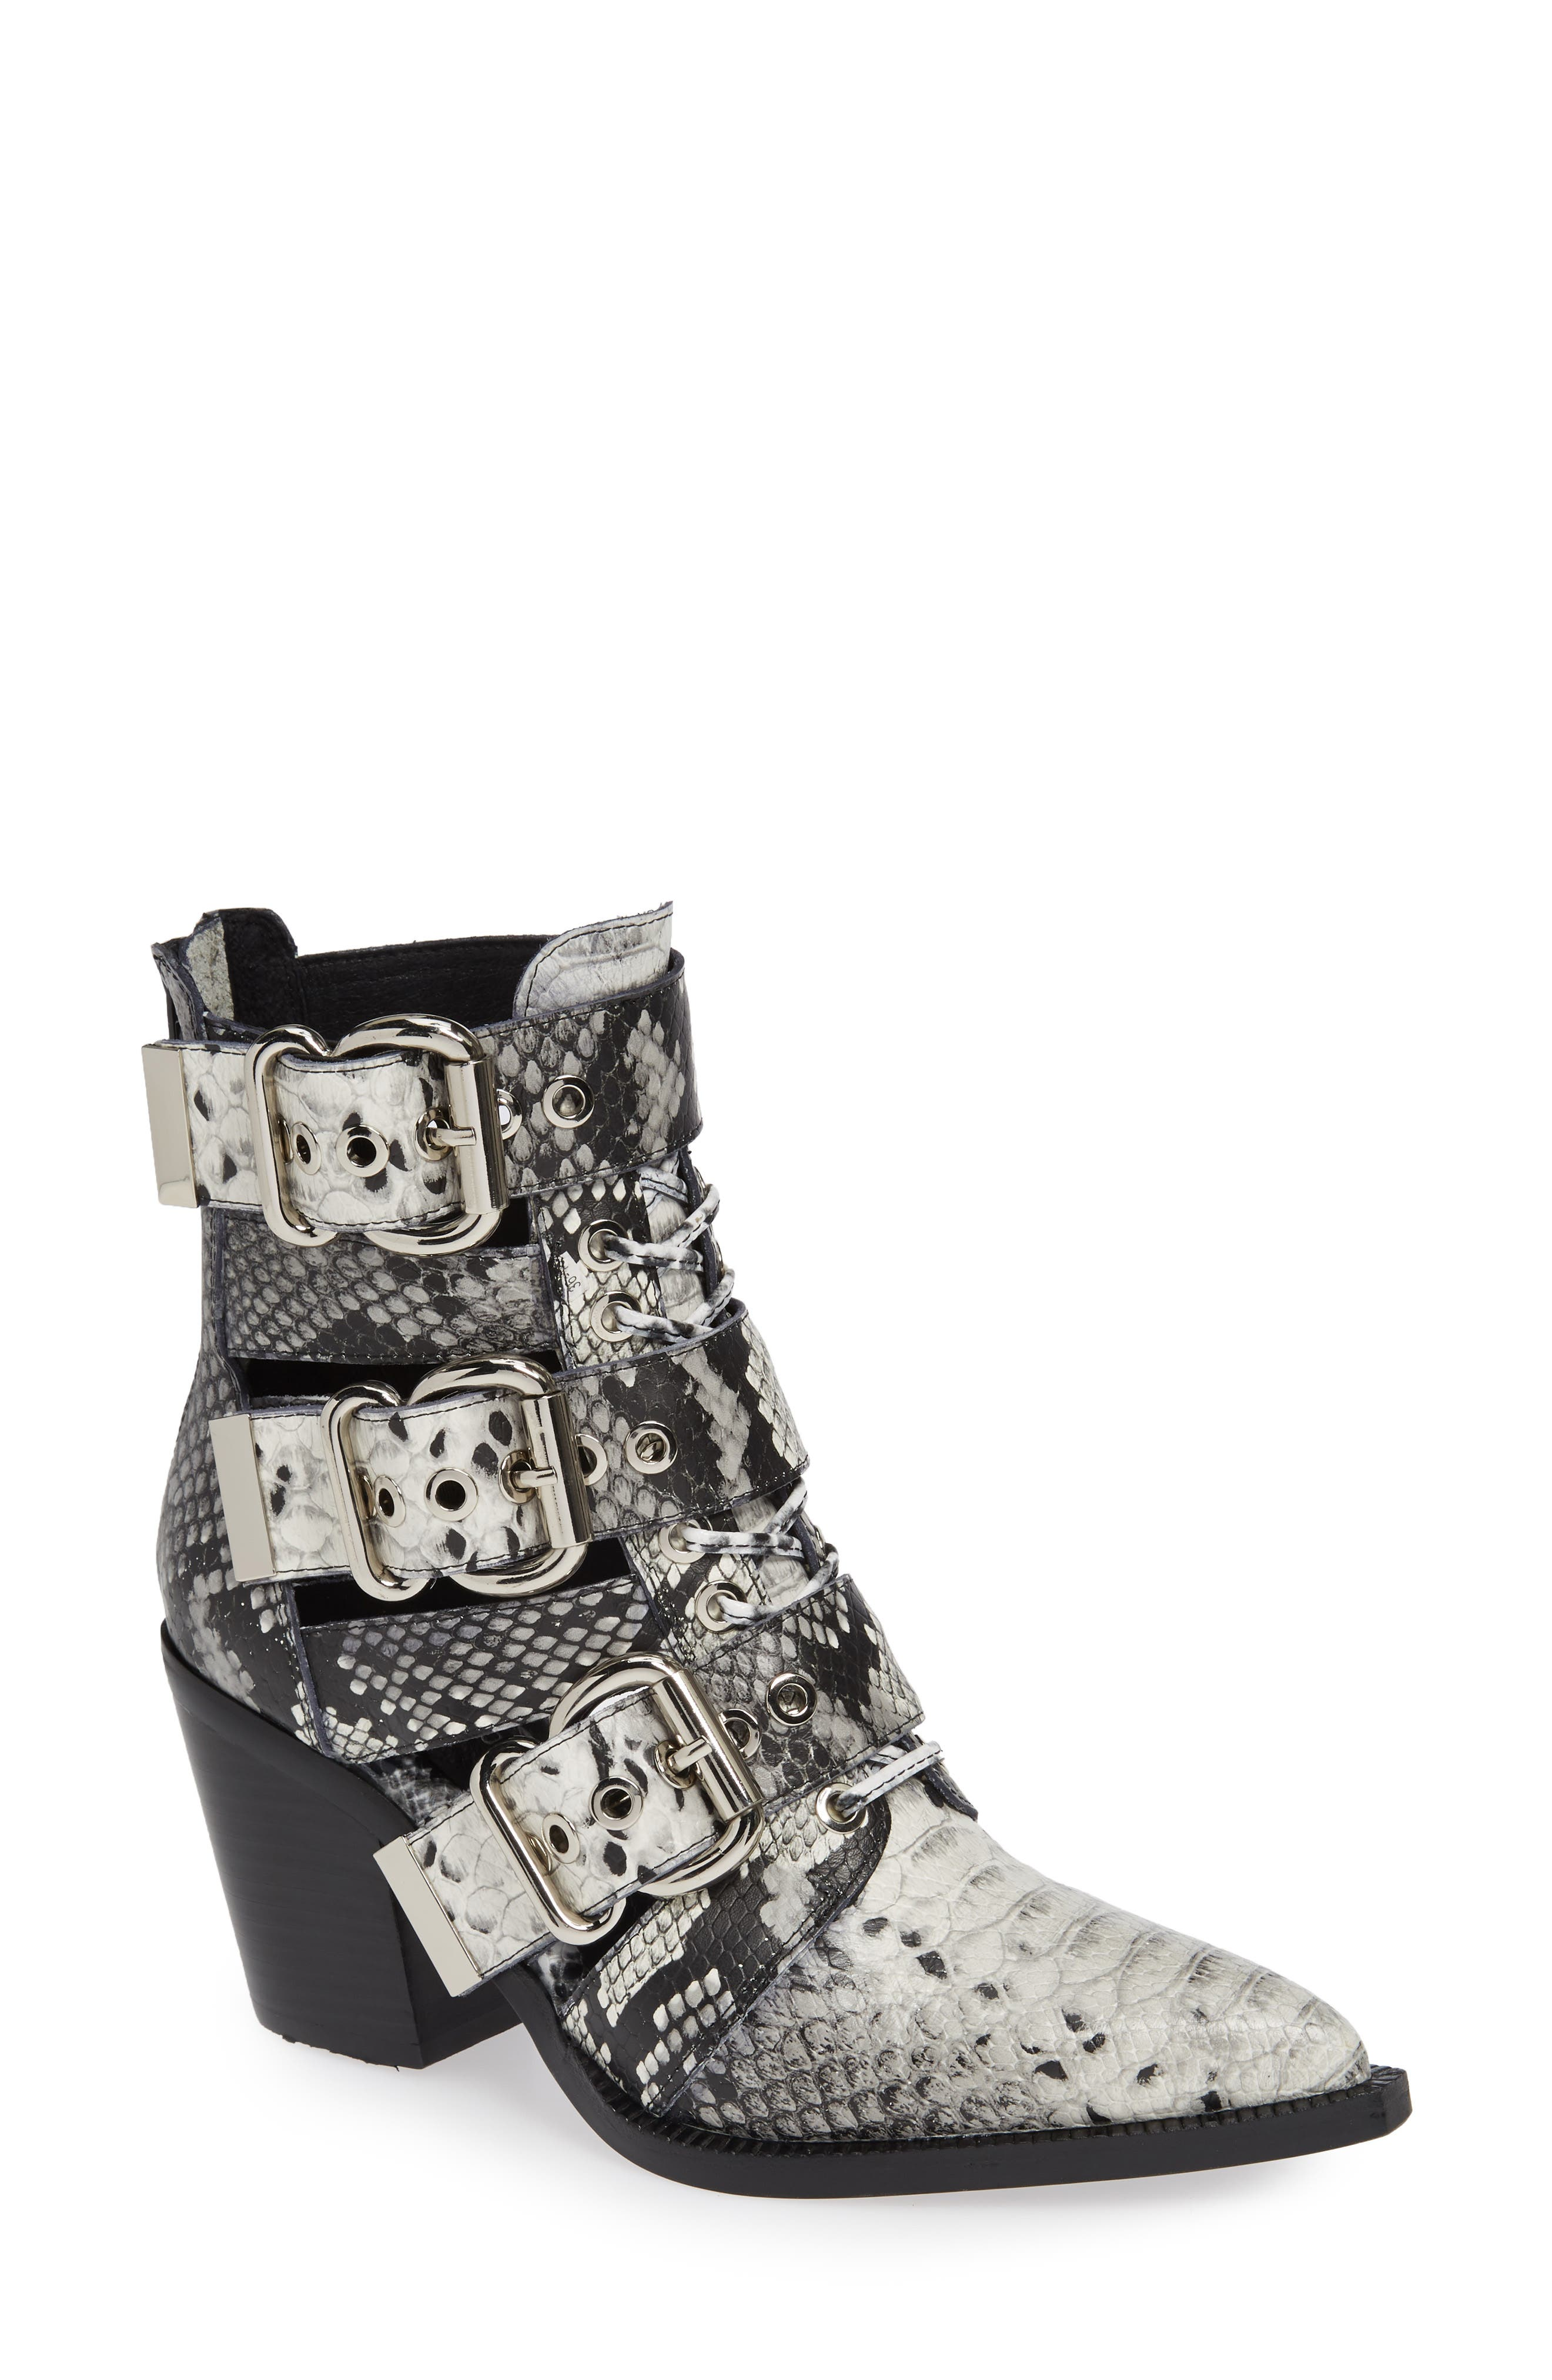 Caceres Bootie,                             Main thumbnail 1, color,                             BLACK WHITE SNAKE PRINT